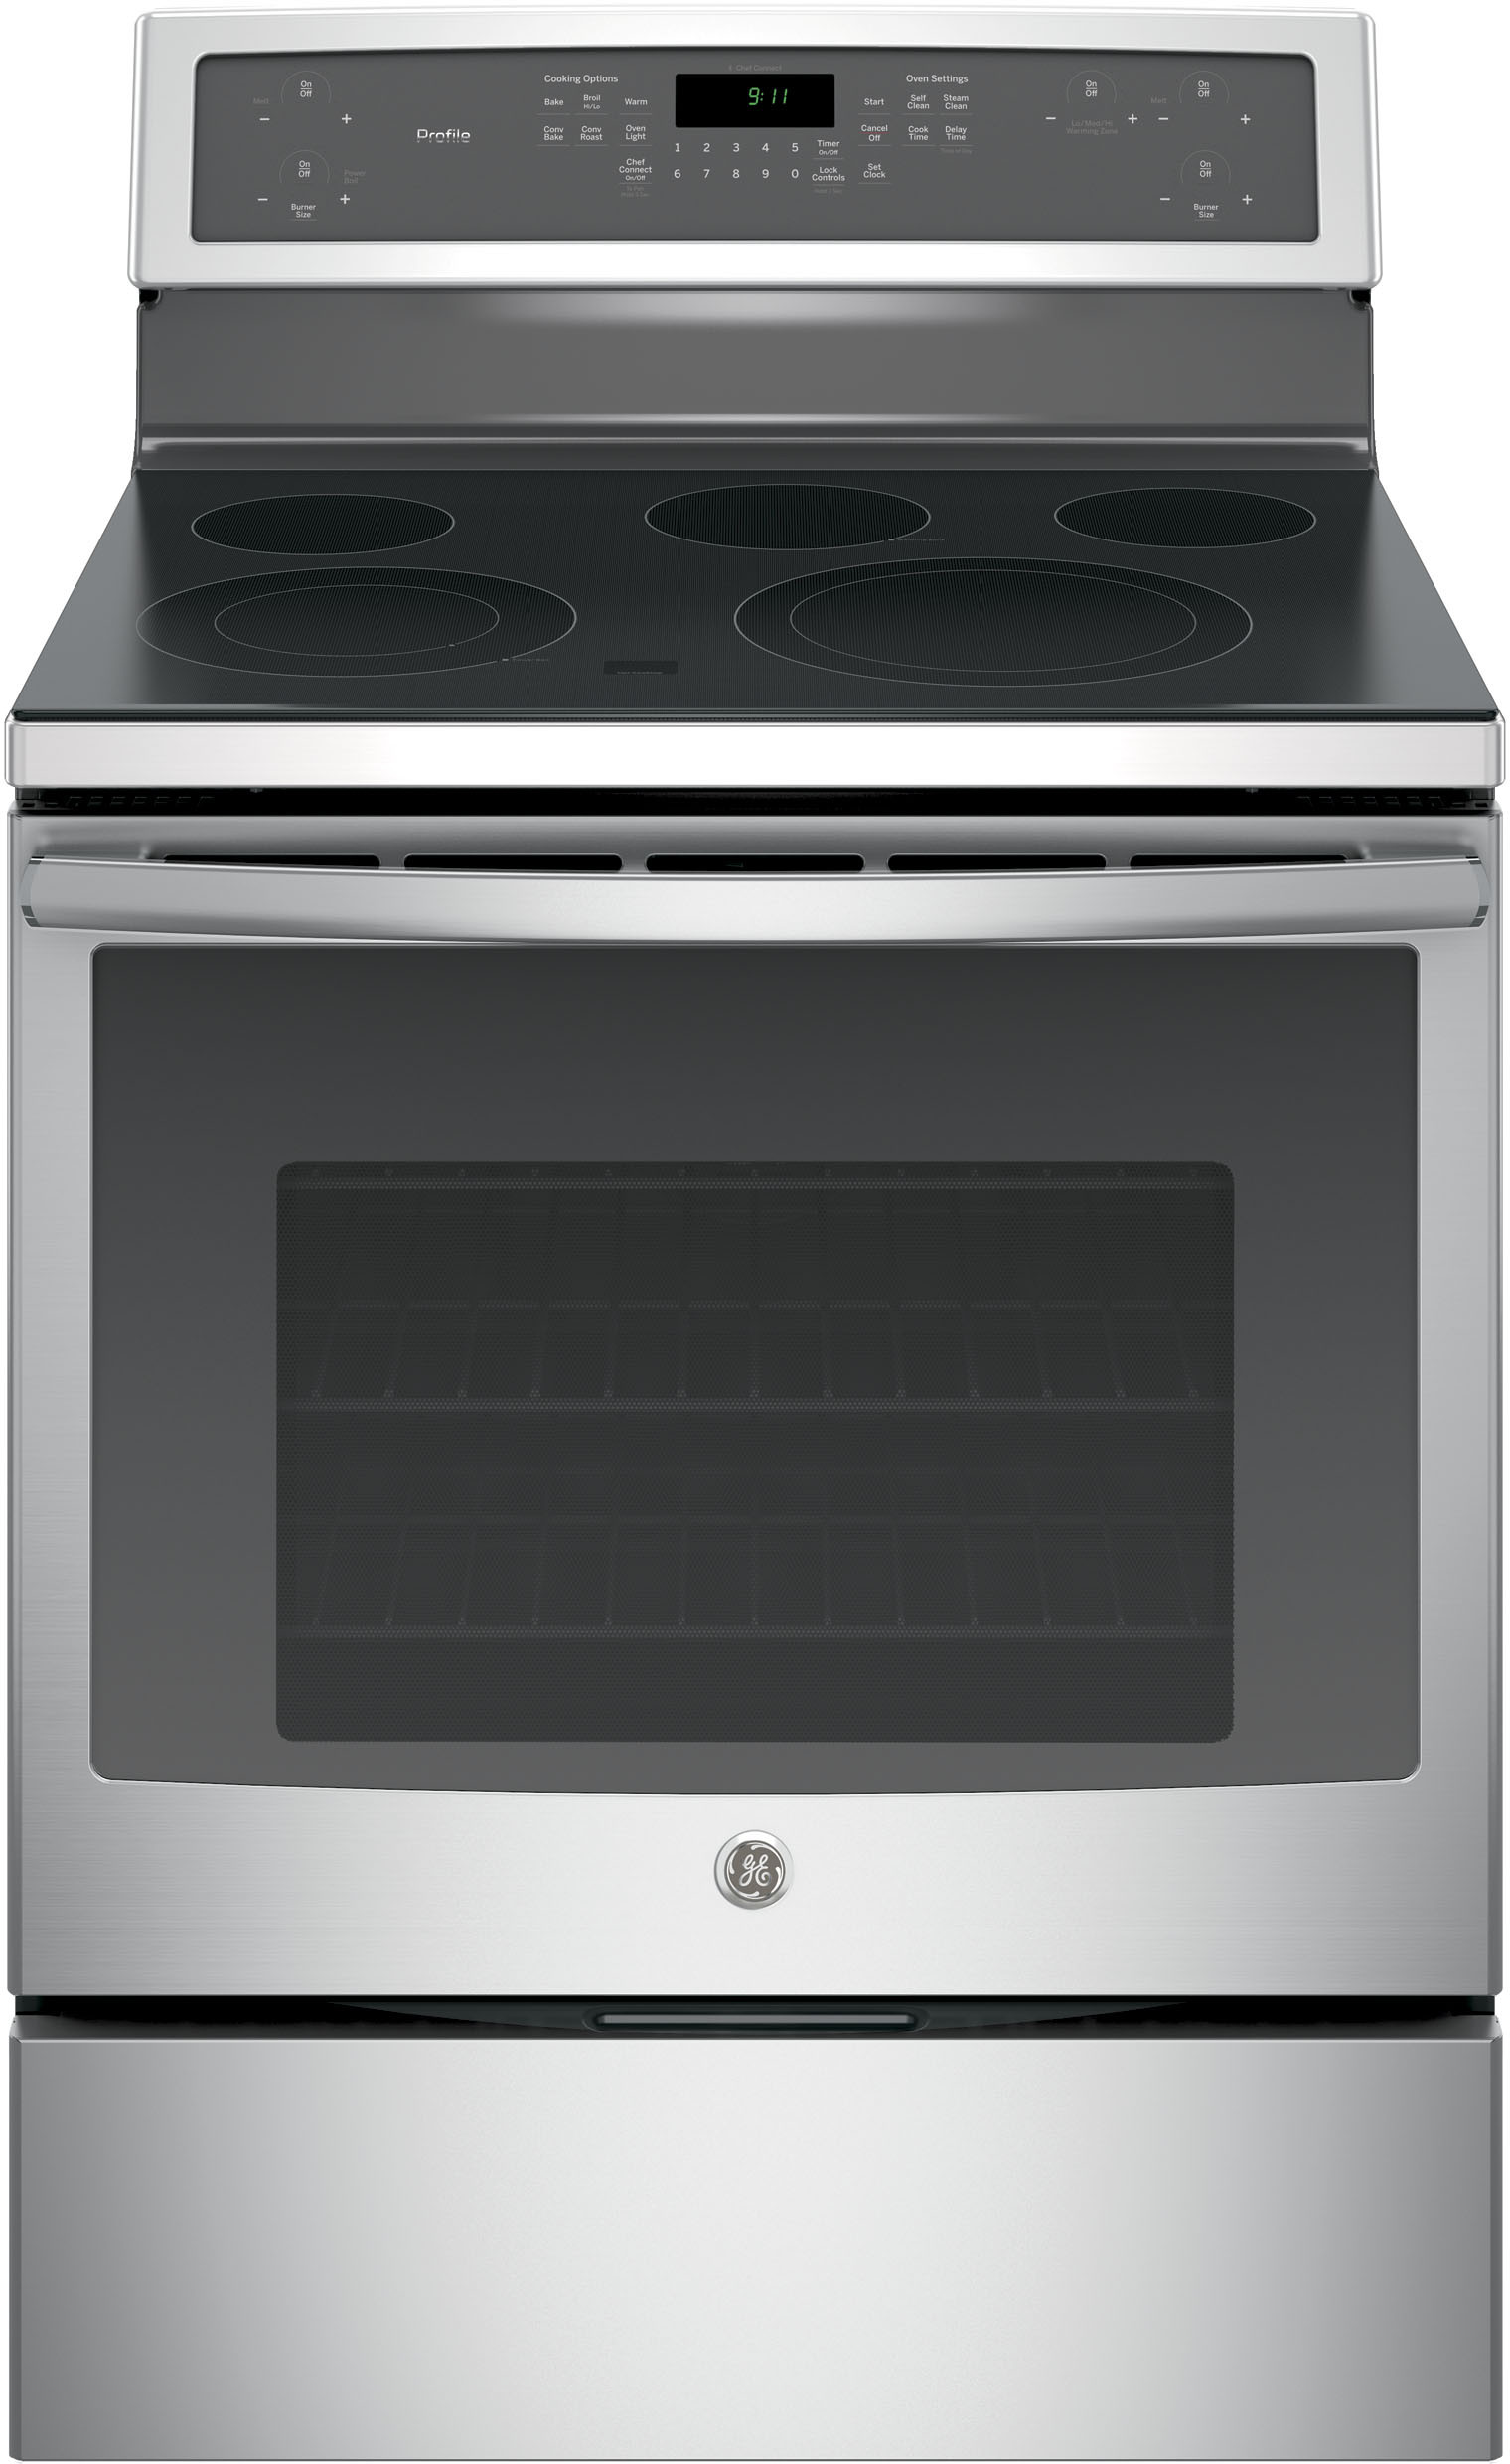 Countertop Warming Drawer Ge Pb911 30 Inch Freestanding Electric Range With 5